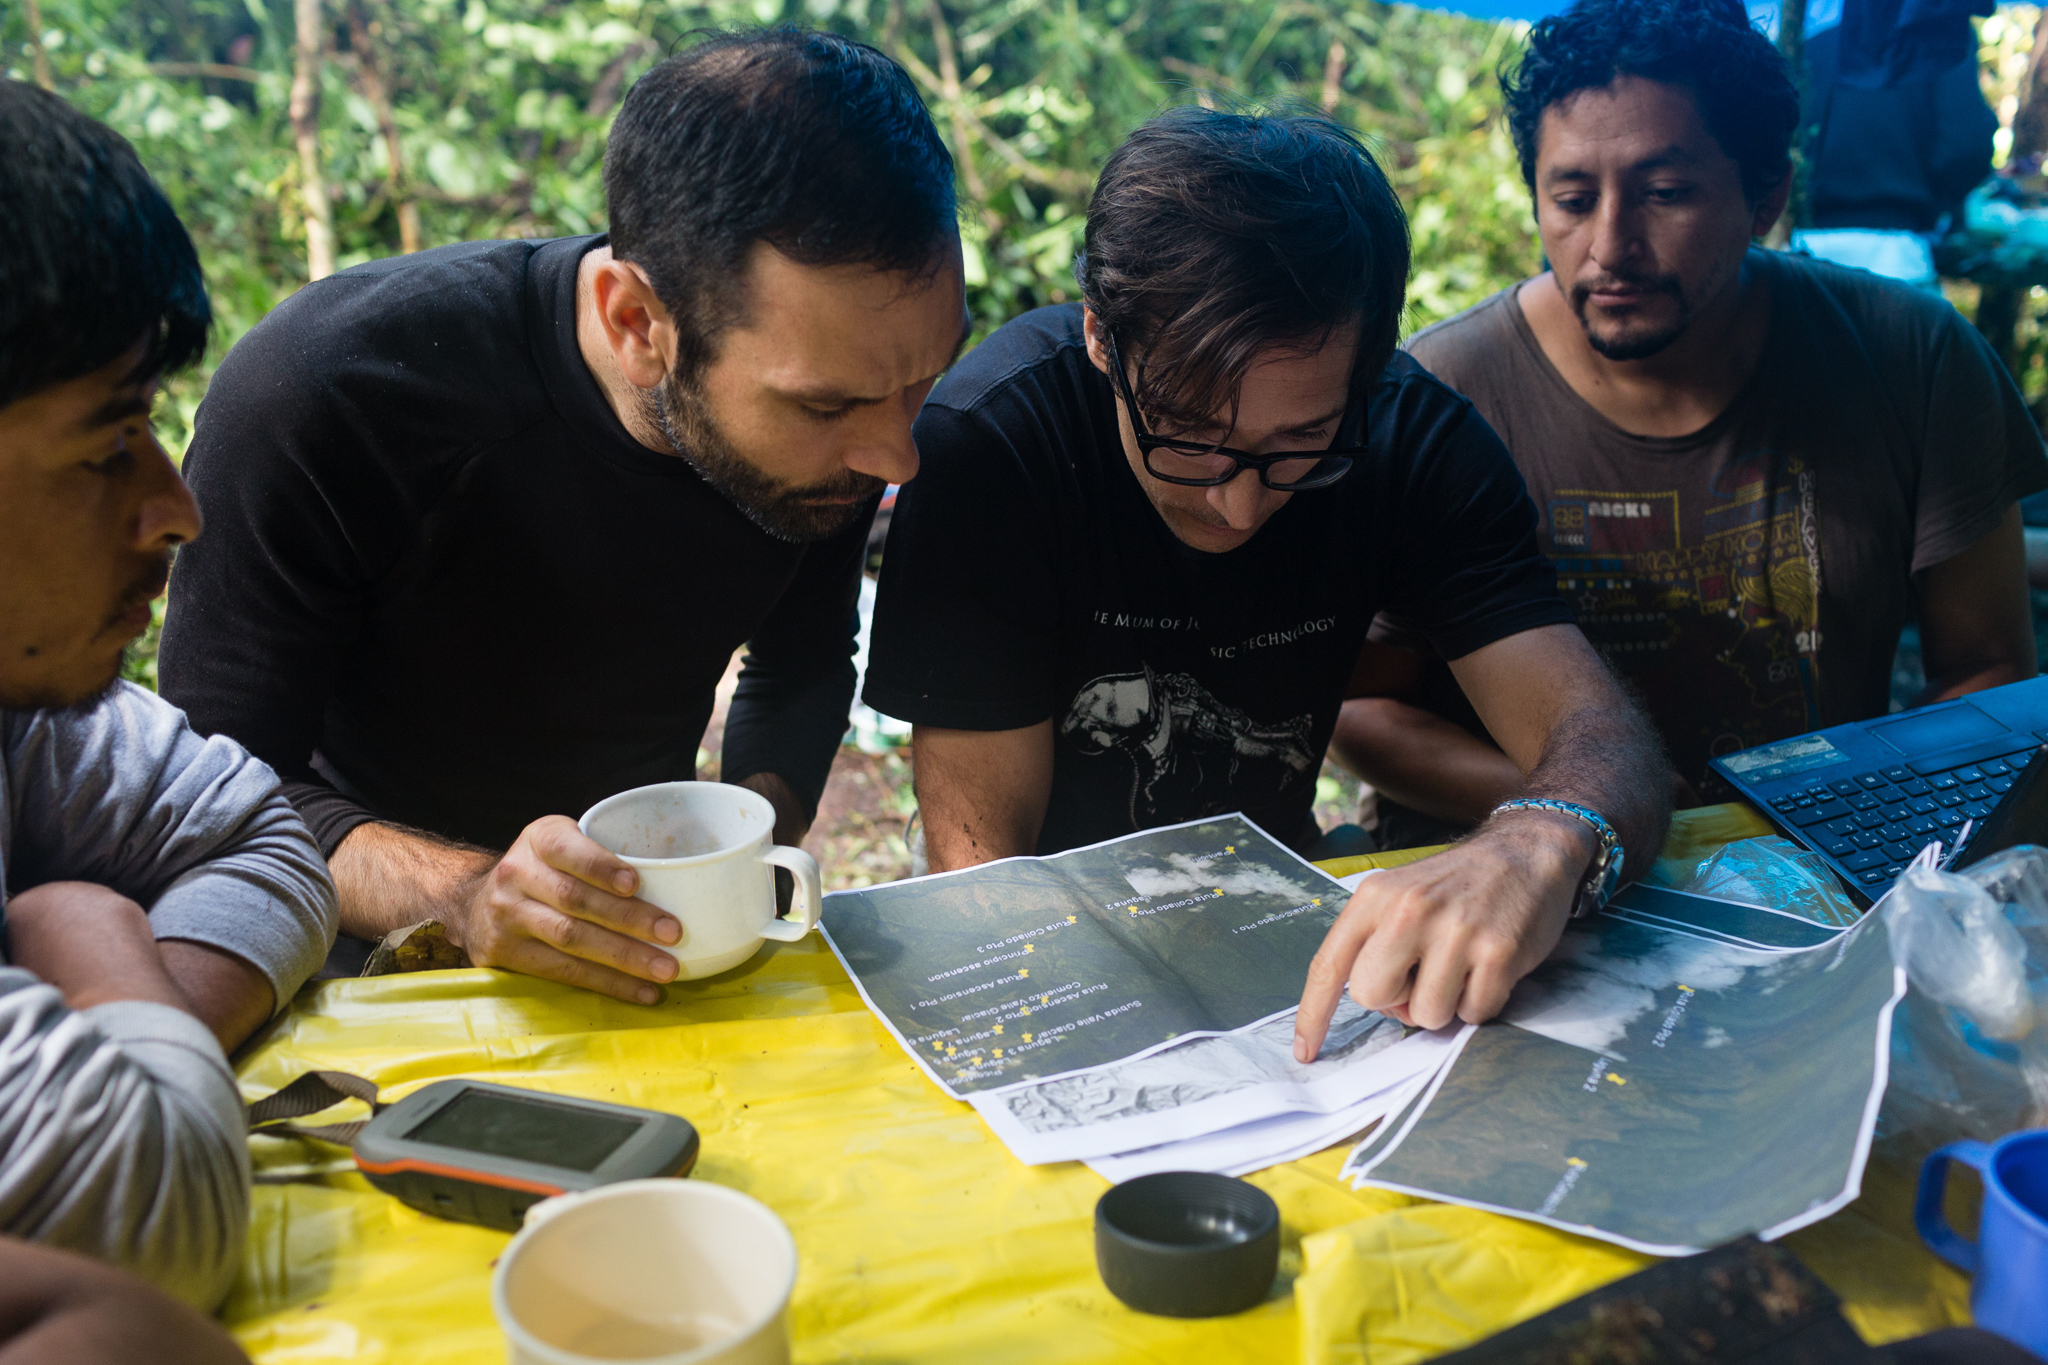 At Camp 2, José Padial discusses the route forward with his team. Photo by Andy Isaacson